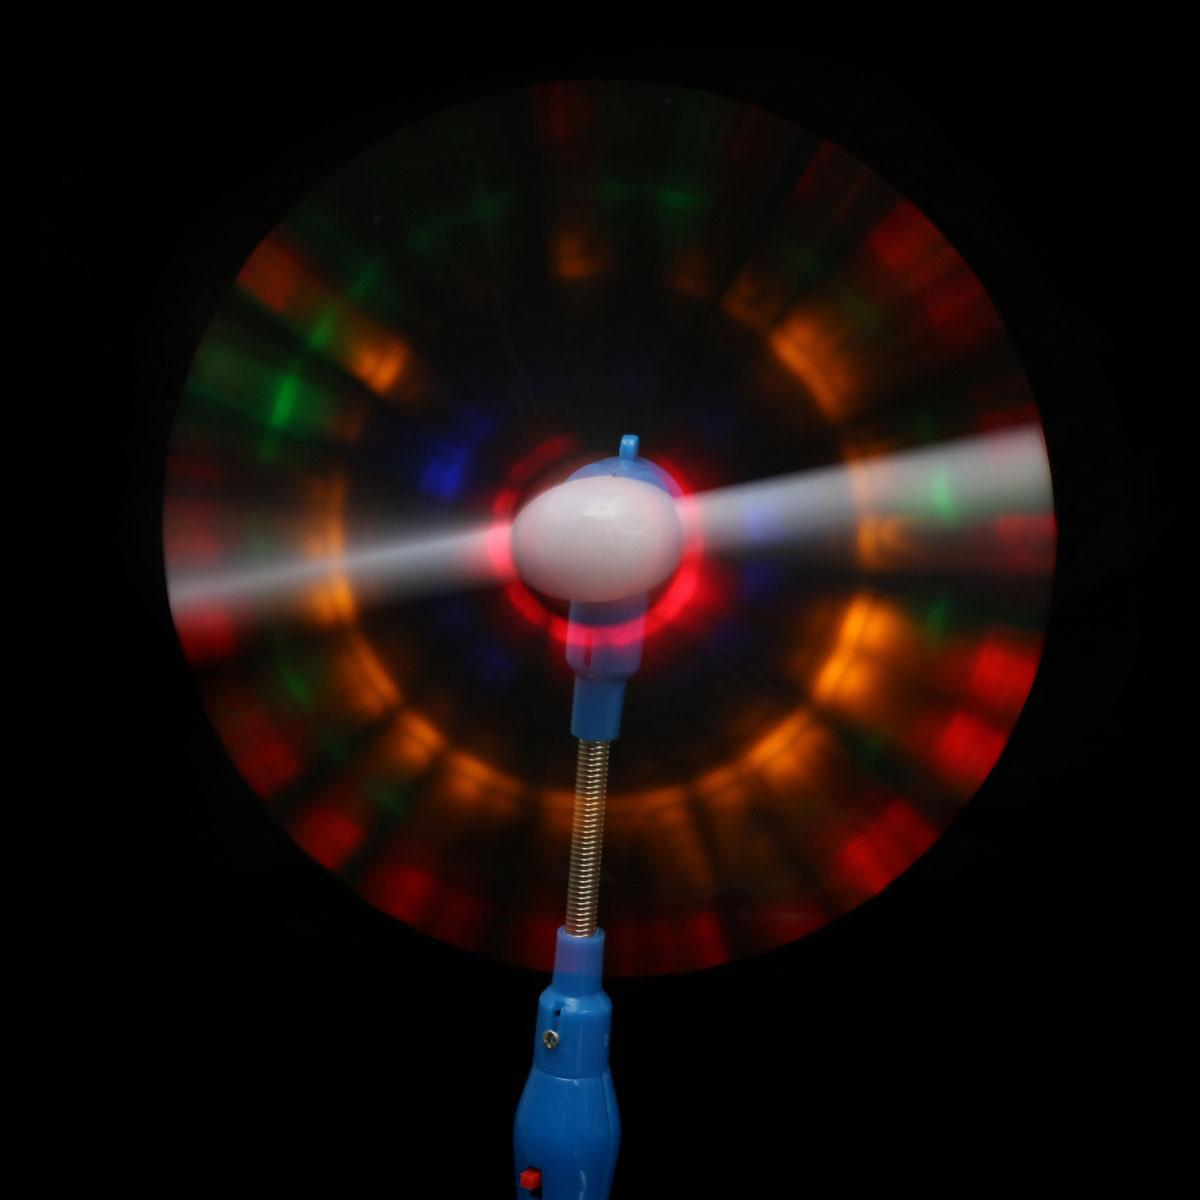 2 X Flashing light up led spinning windmill toy glows kids present gift party